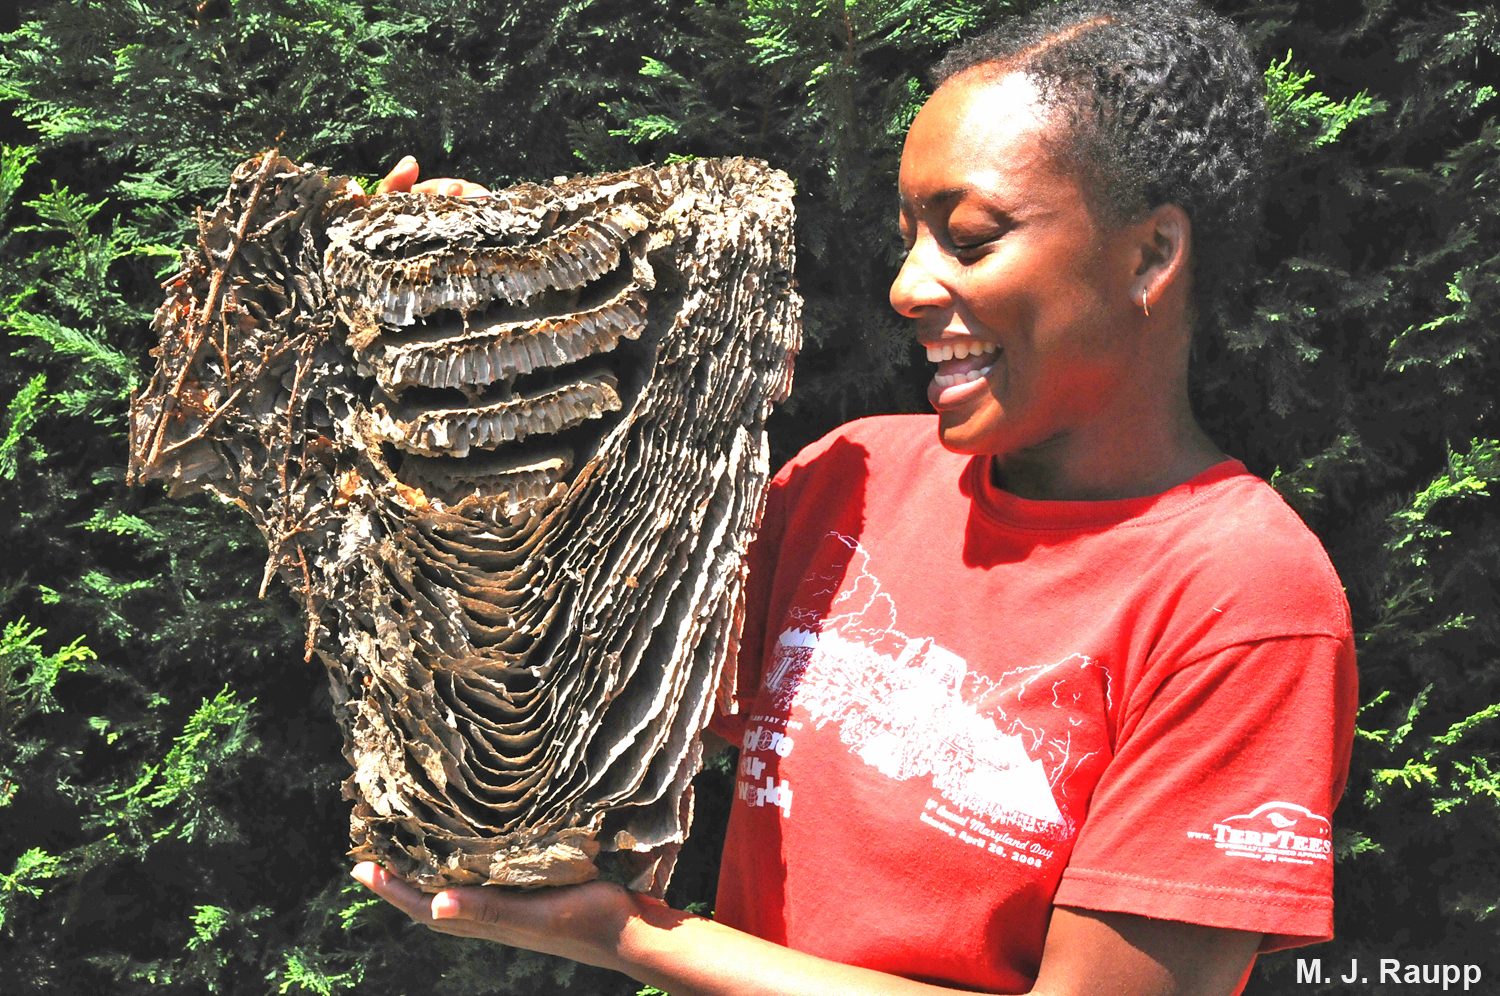 Baldfaced hornet nests can be the size of beach balls and contain hundreds of hornets.